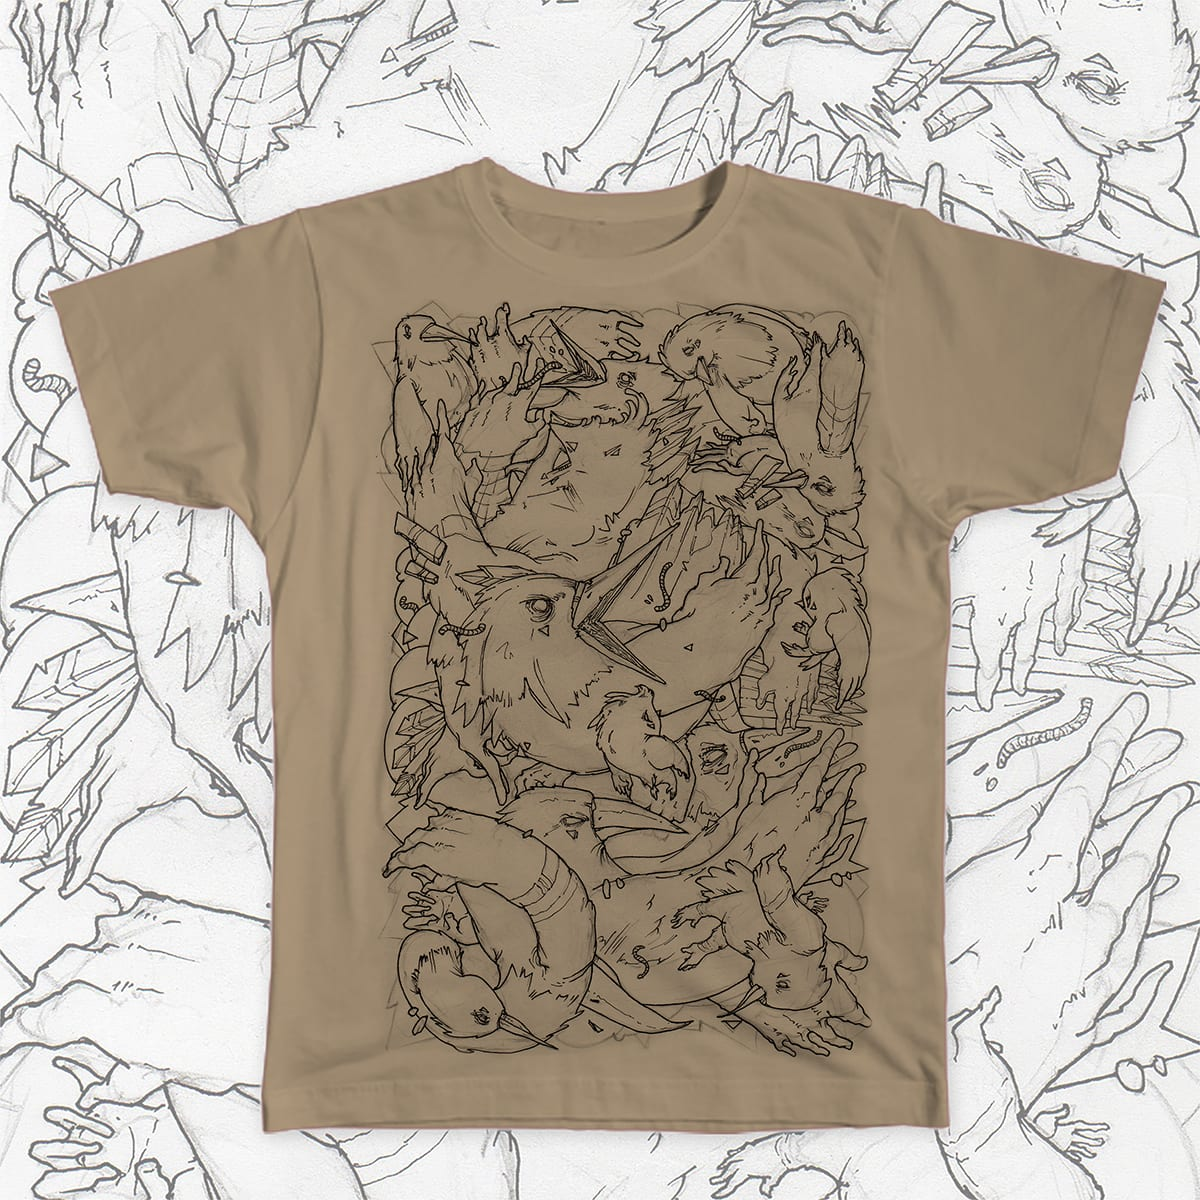 Birds handwing by Jose Saenz on Threadless